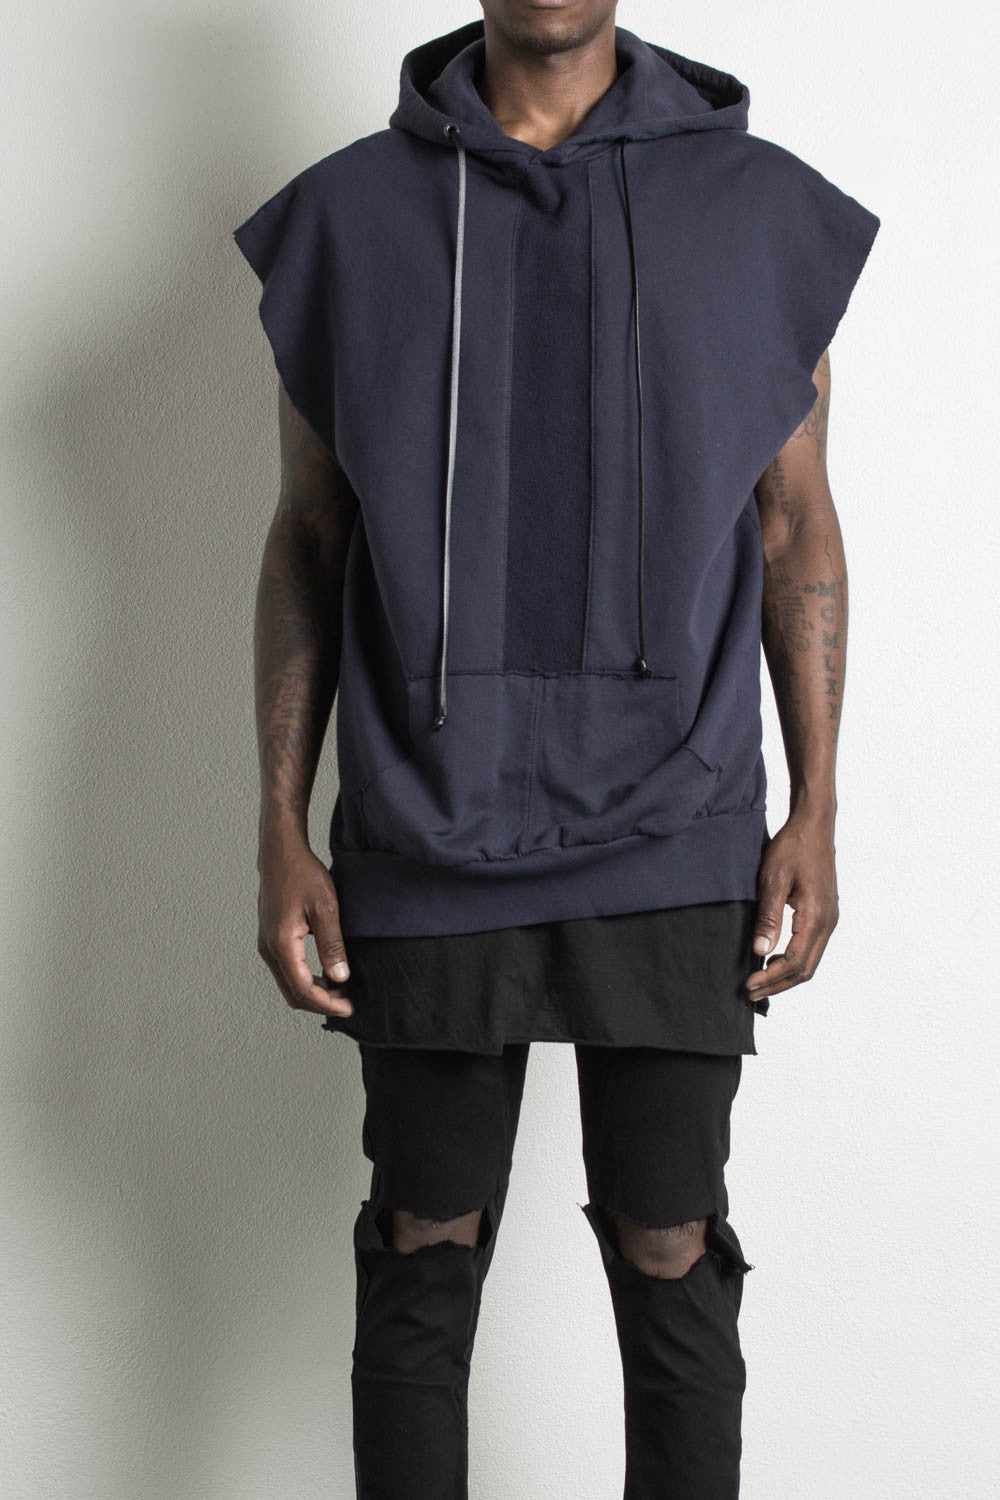 sleeveless hoodie in ink by daniel patrick